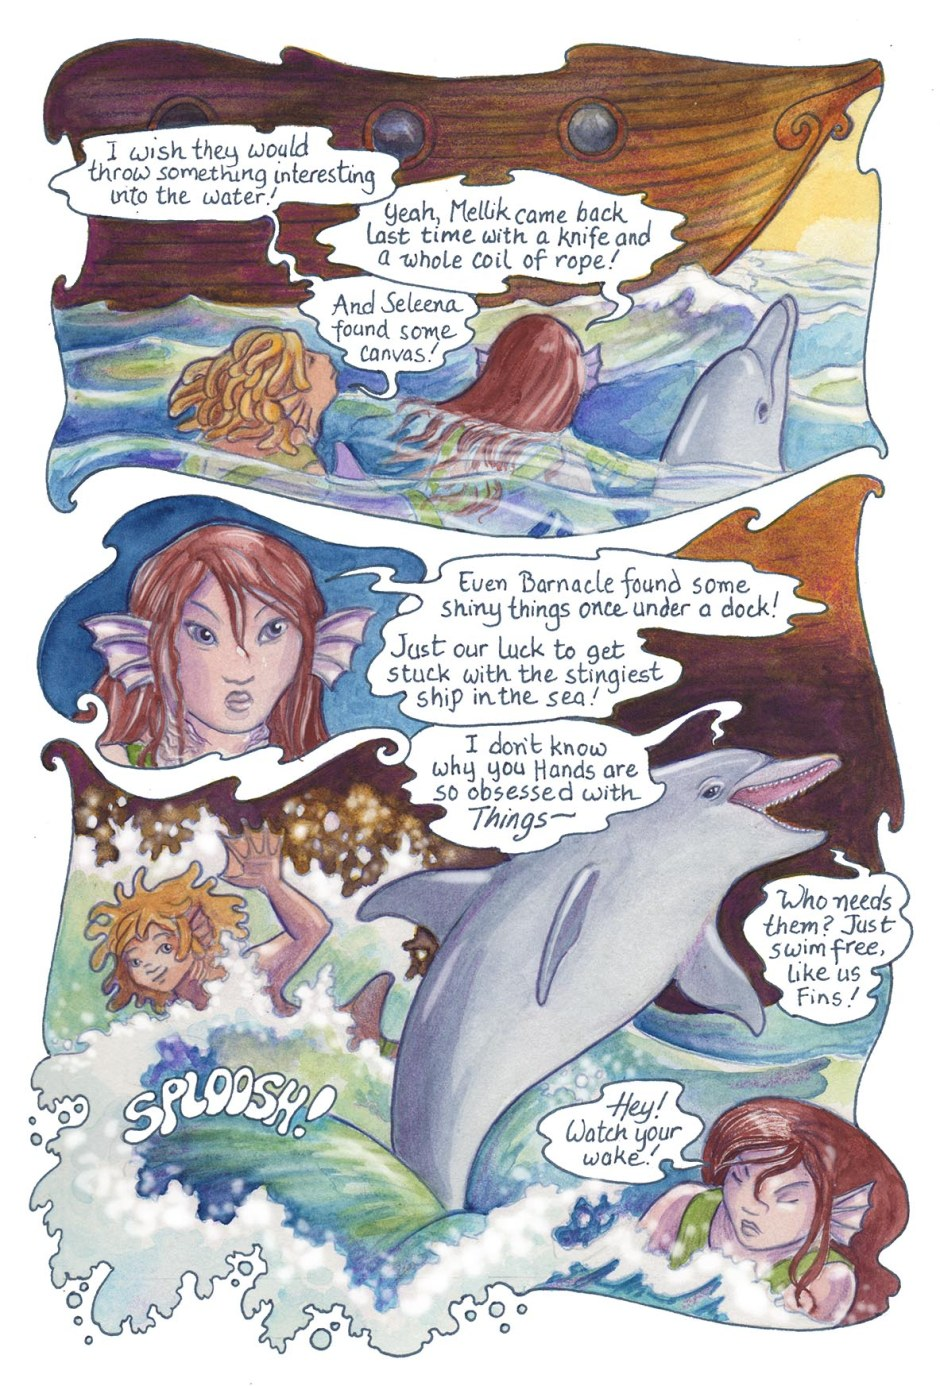 Page 54 — even the lowly job of scavenger has its rewards, if the ship cooperates!